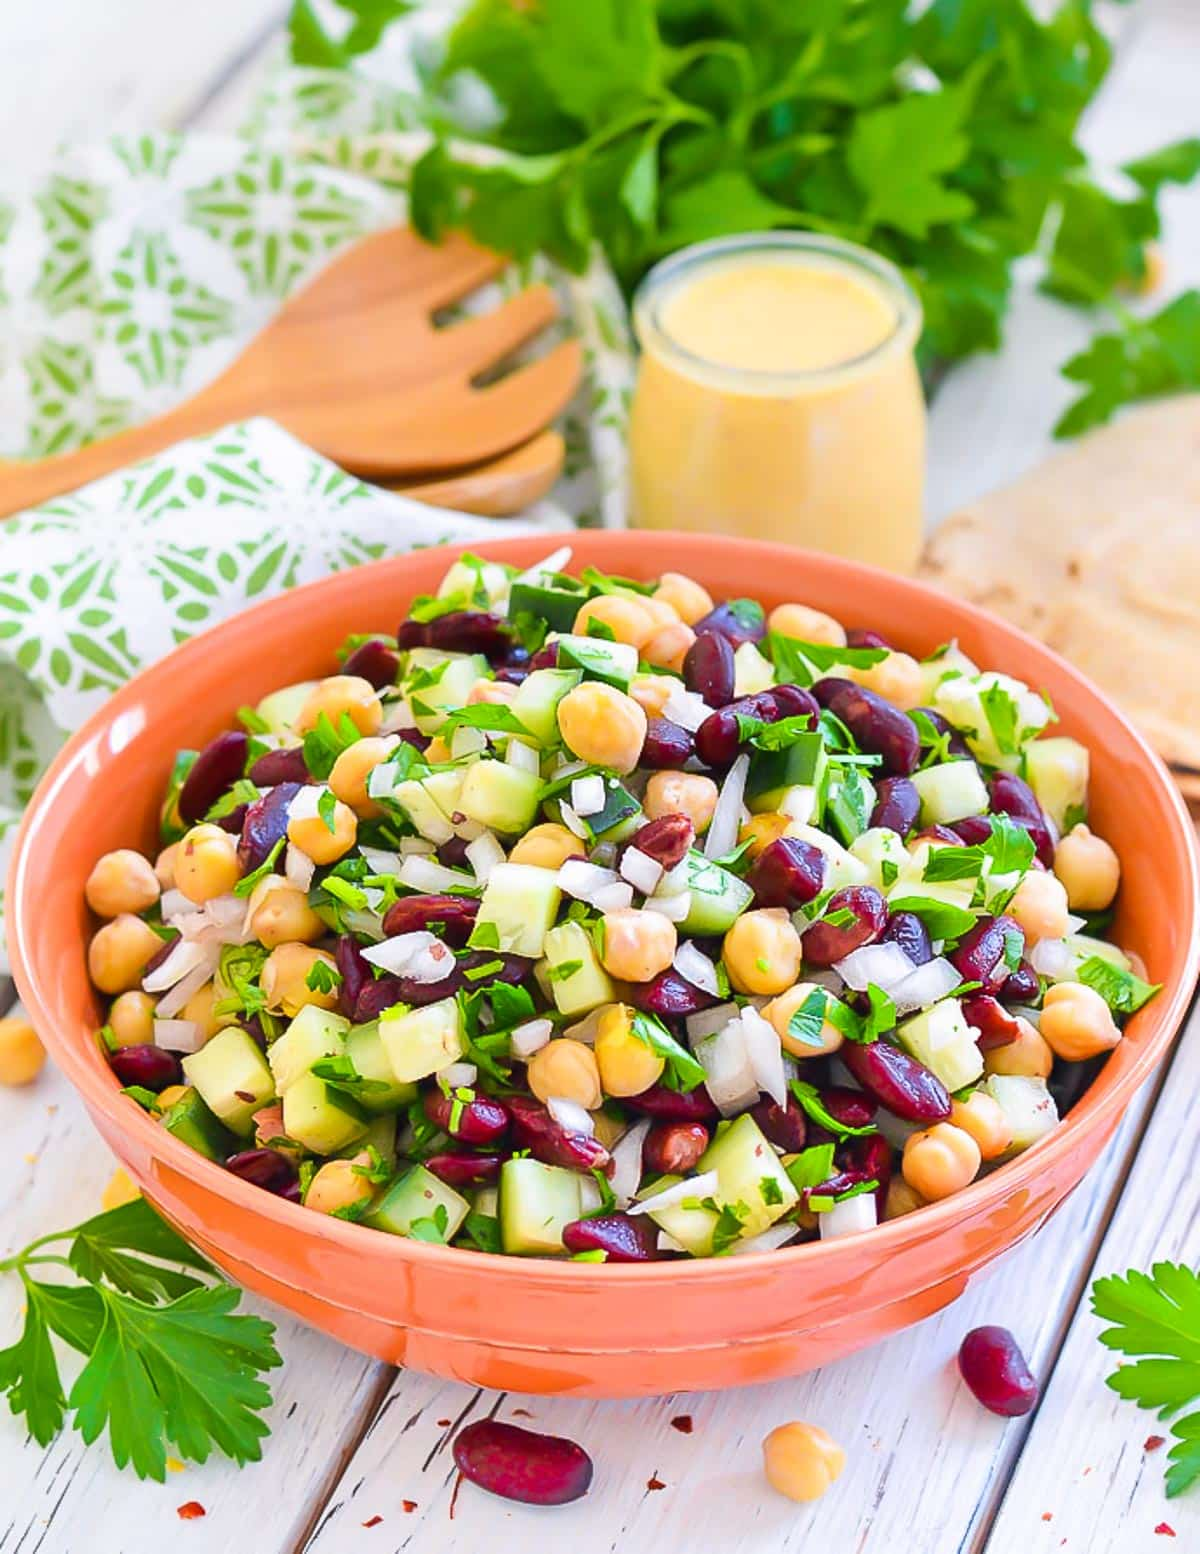 kidney bean salad in a bowl with a jar of lemon dressing behind